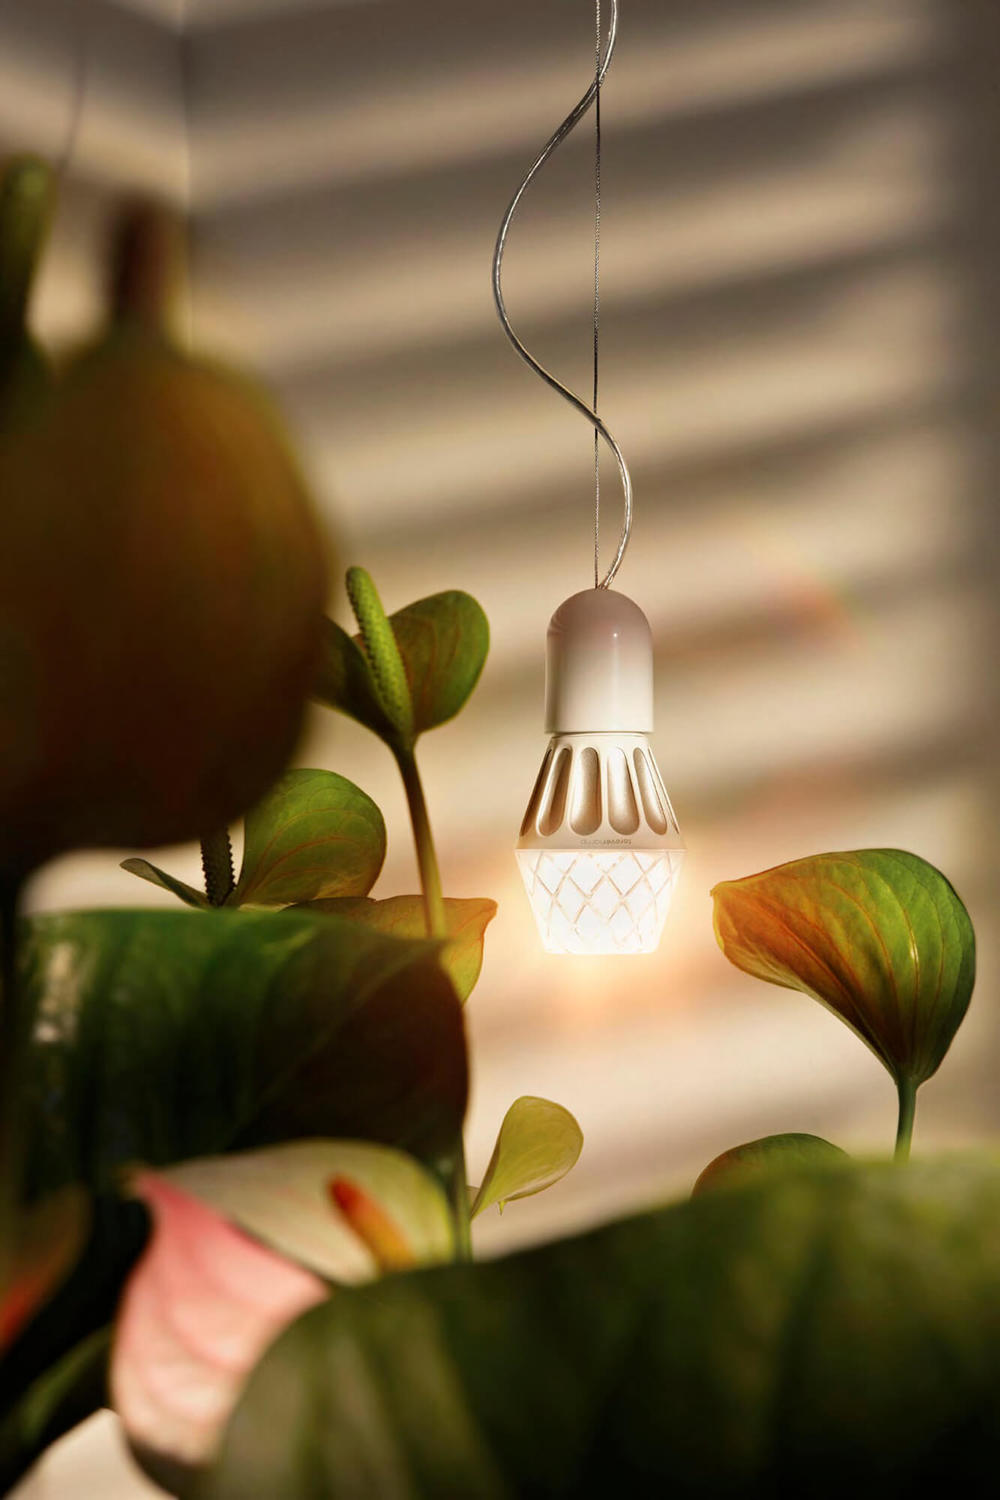 AlessiLux Vienna LED light bulb